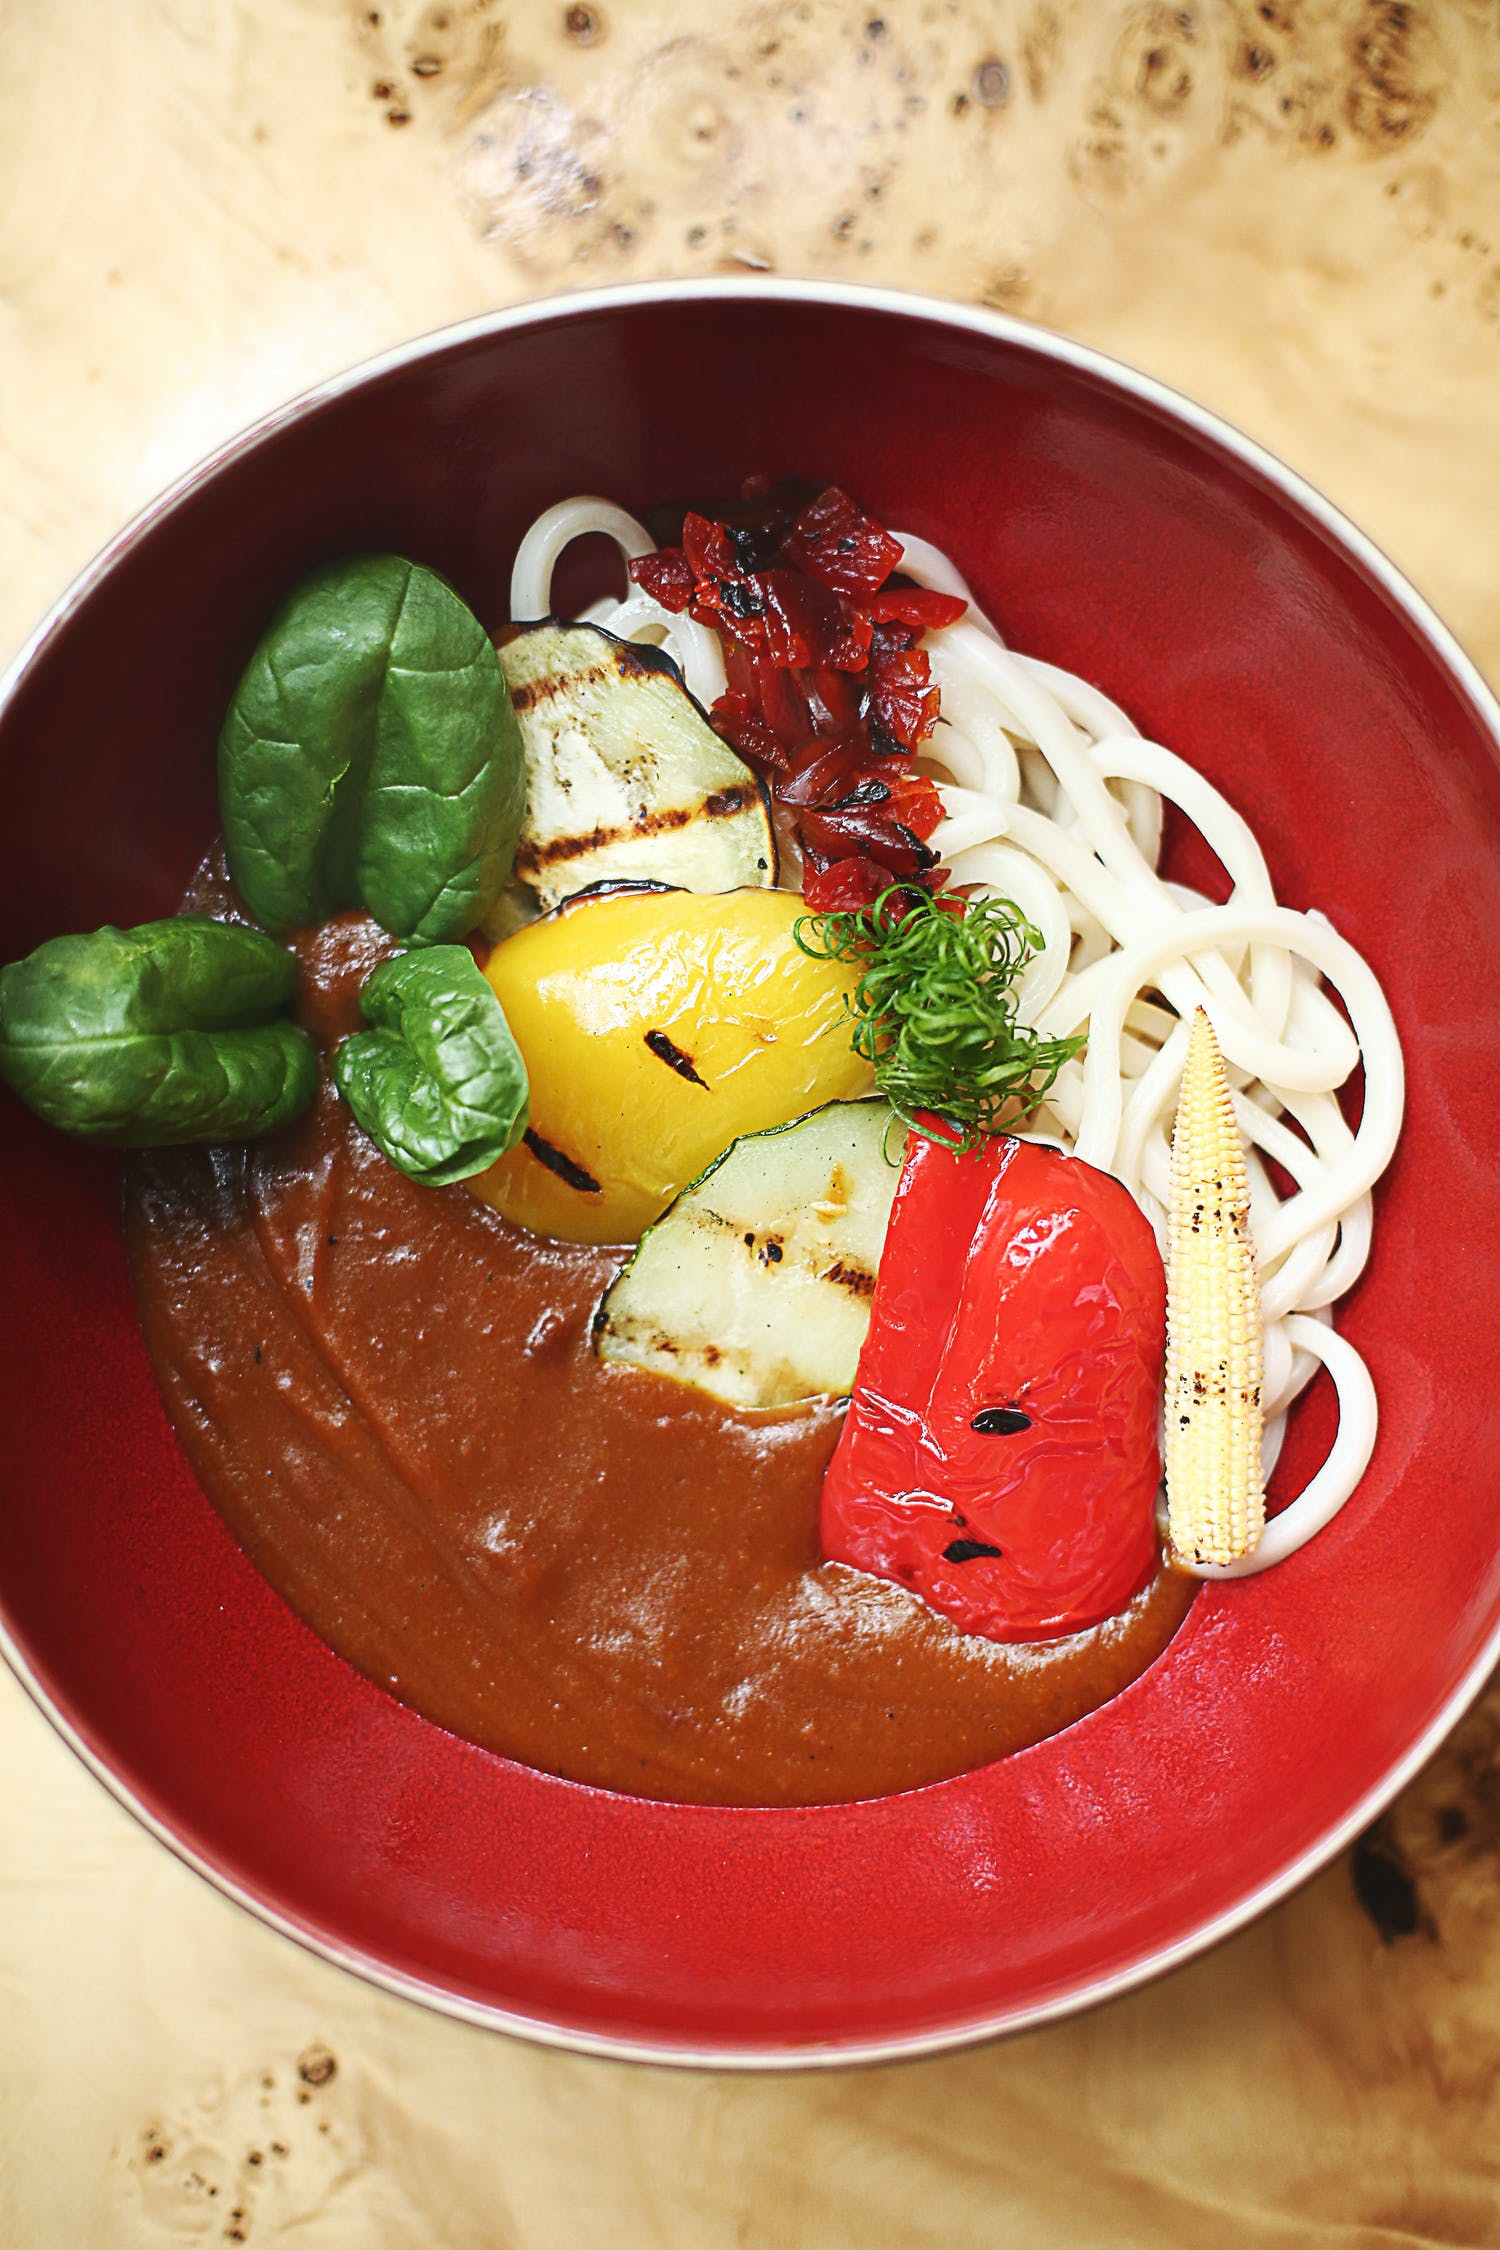 Pasta With Sauce and Green Vegetable on Red Bowl